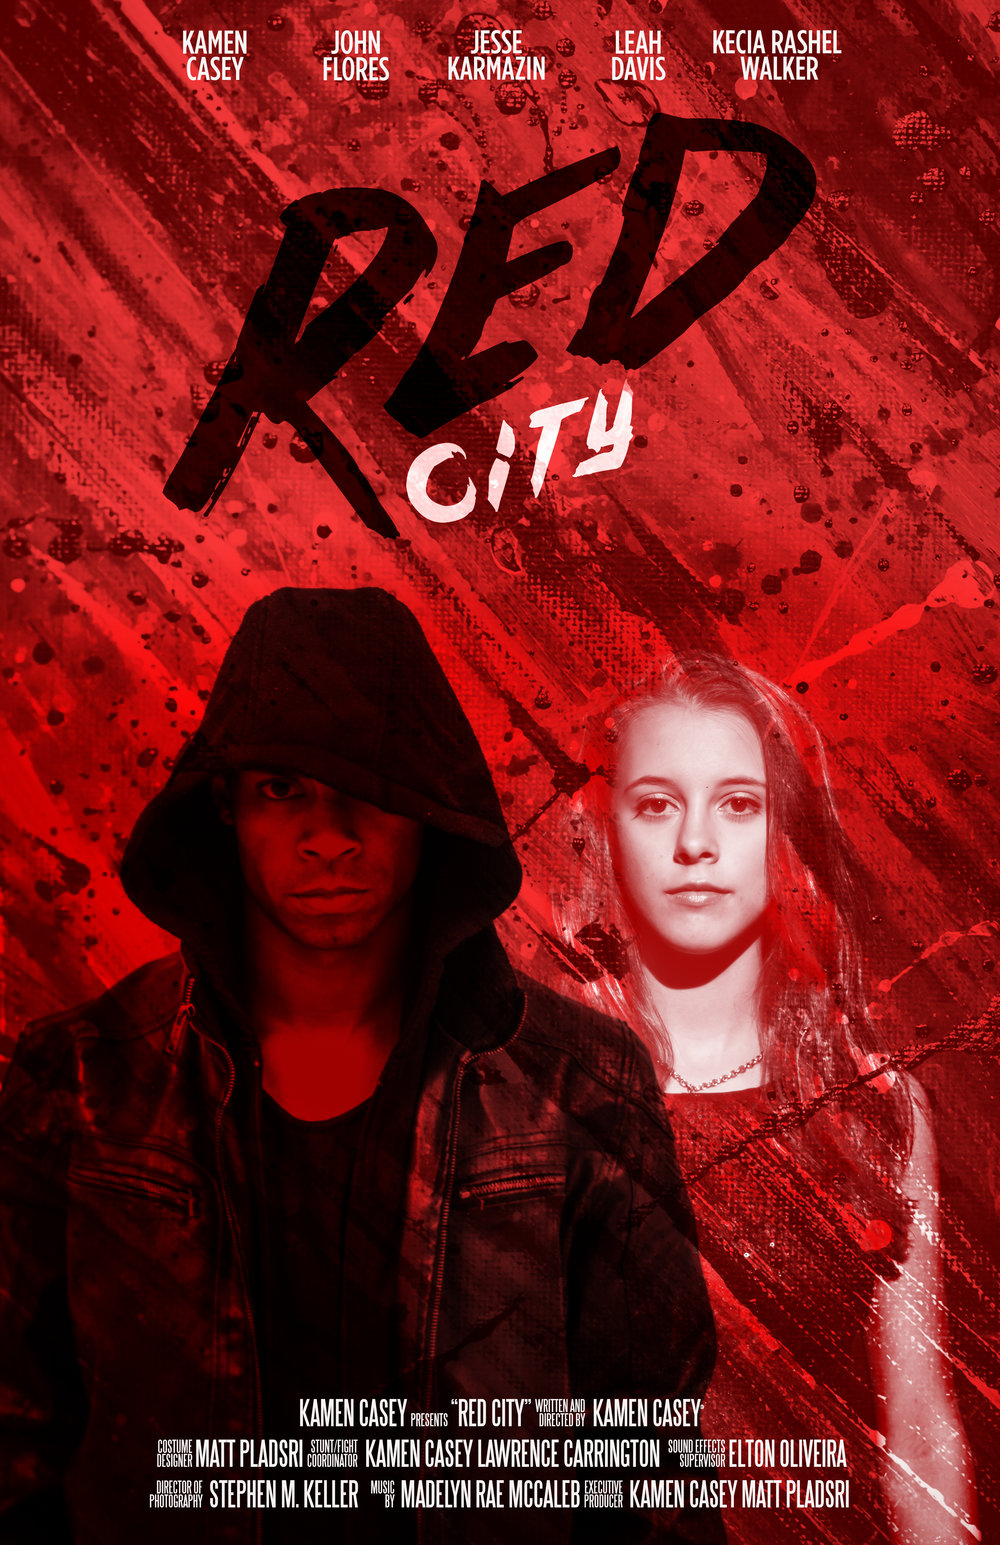 RedCity.Kamen.11x17.Proof.03.jpg